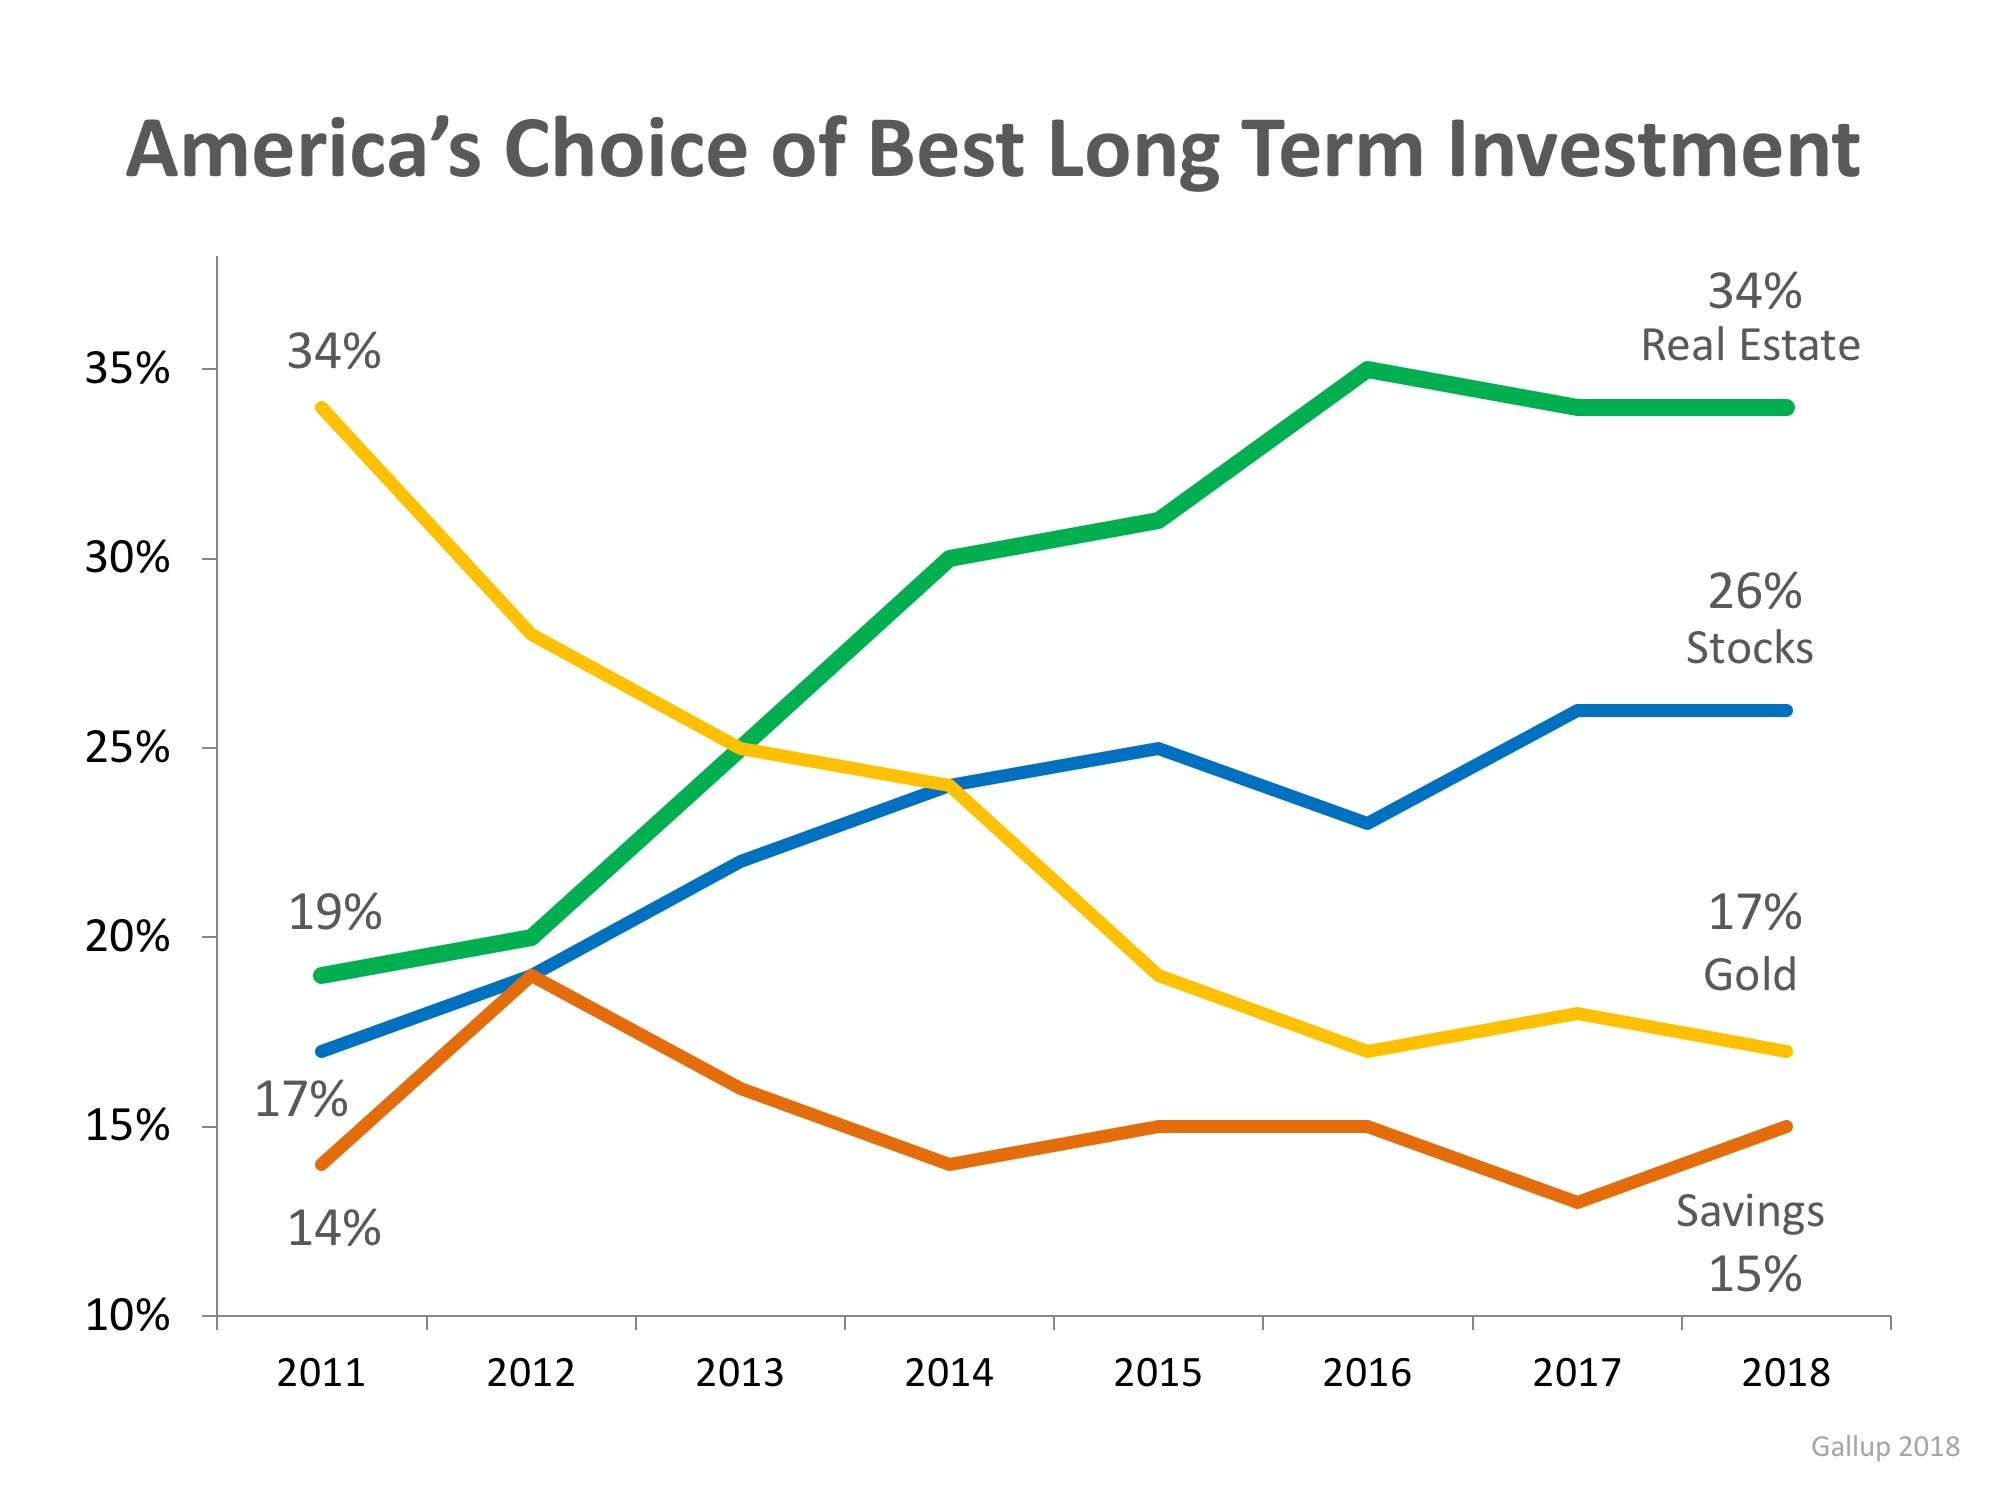 Real Estate Tops Best Investment Poll for 5th Year Running